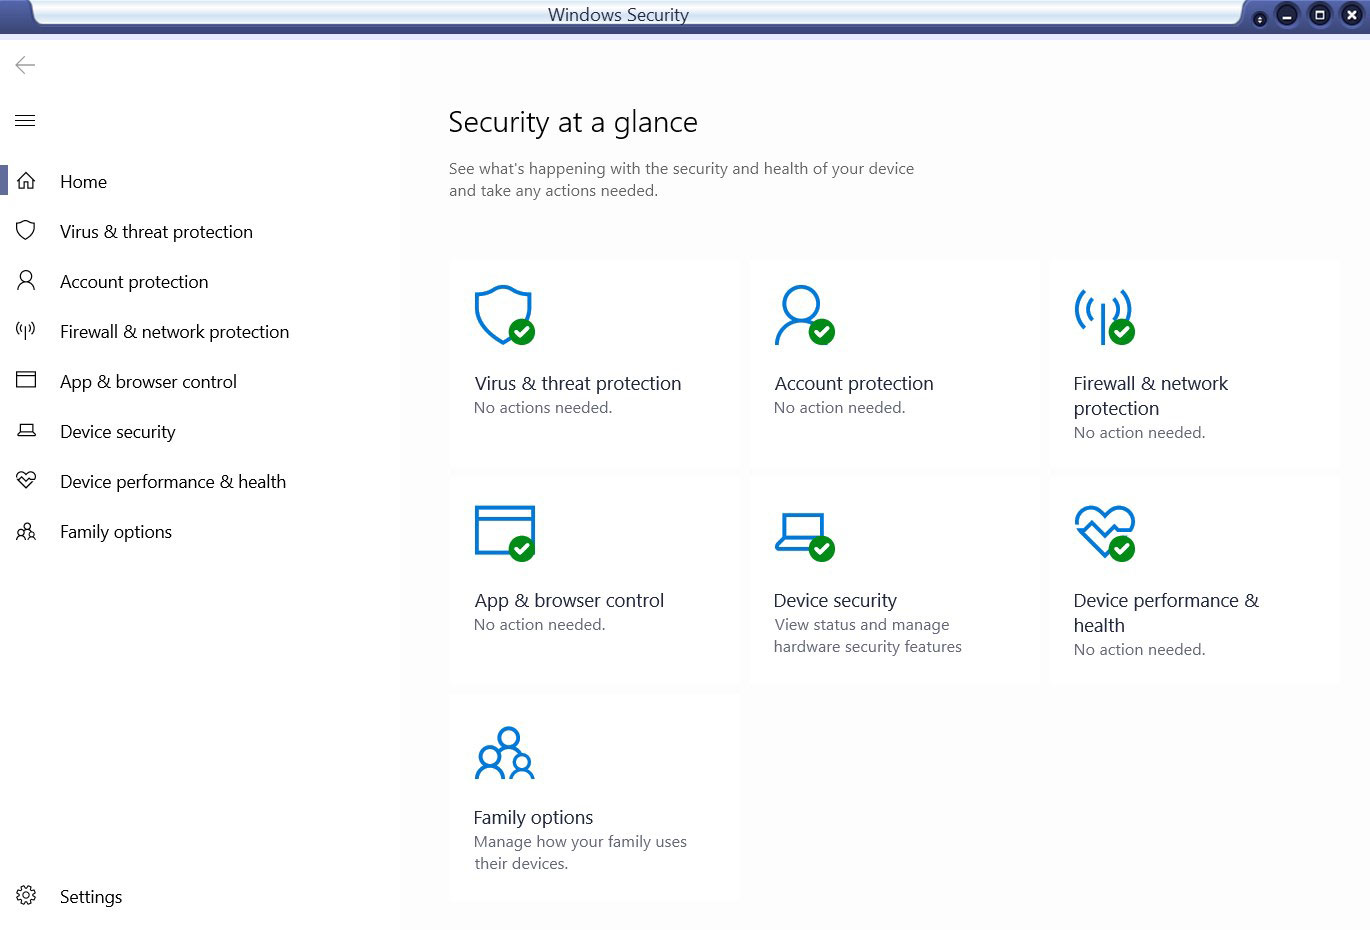 A screen capture of Windows 10 security settings.